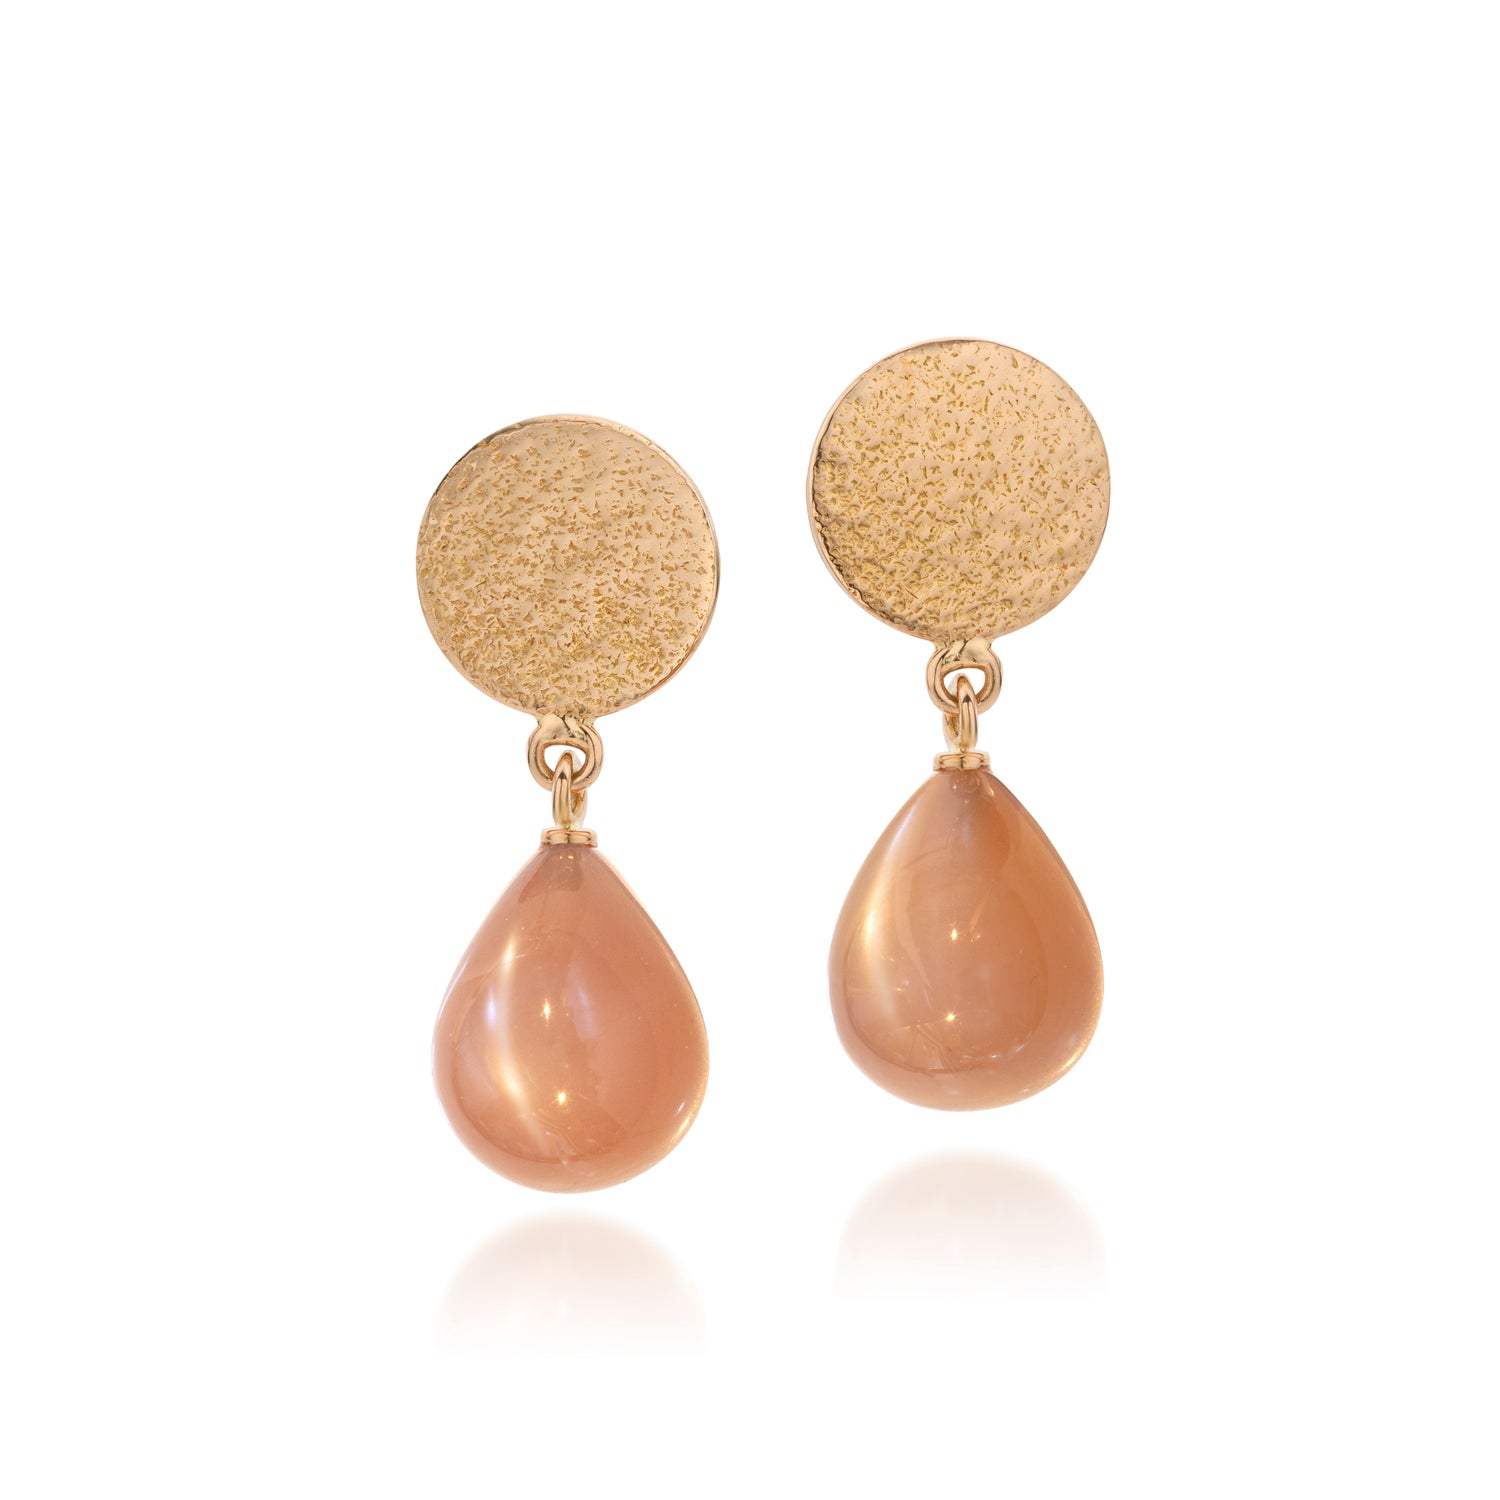 Image of oorjuwelen in roos goud en Indische maansteen - earring in pink gold and moonstones